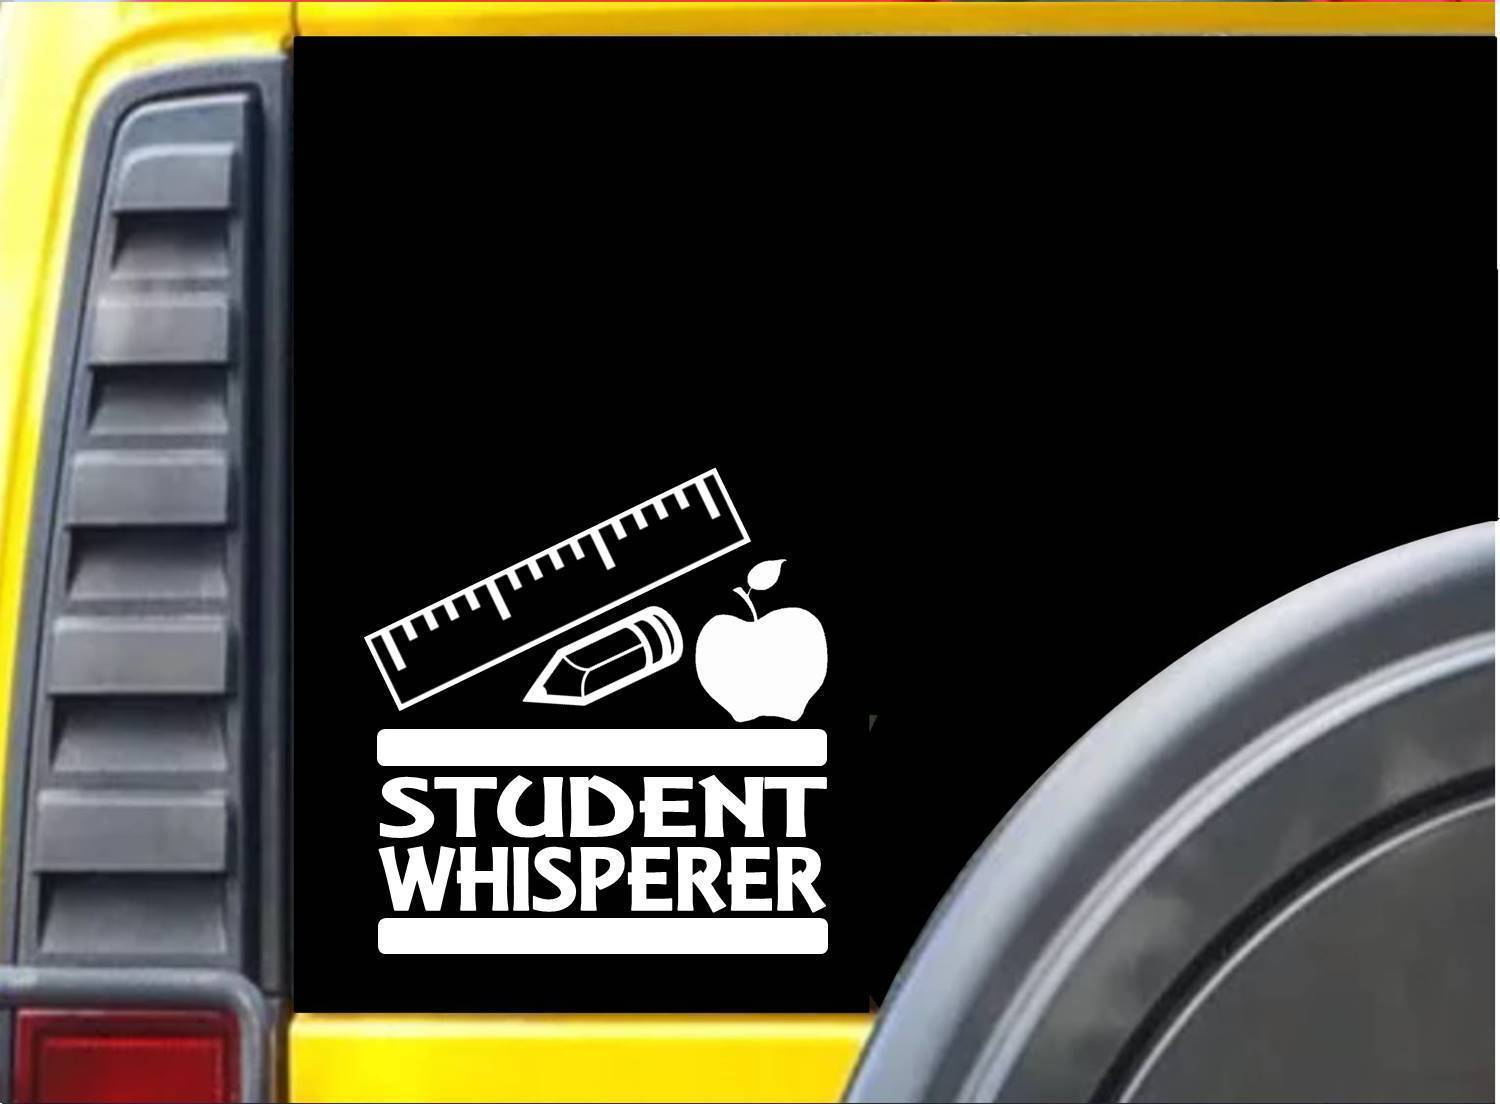 Student Whisperer K679 6 inch Sticker teaching decal